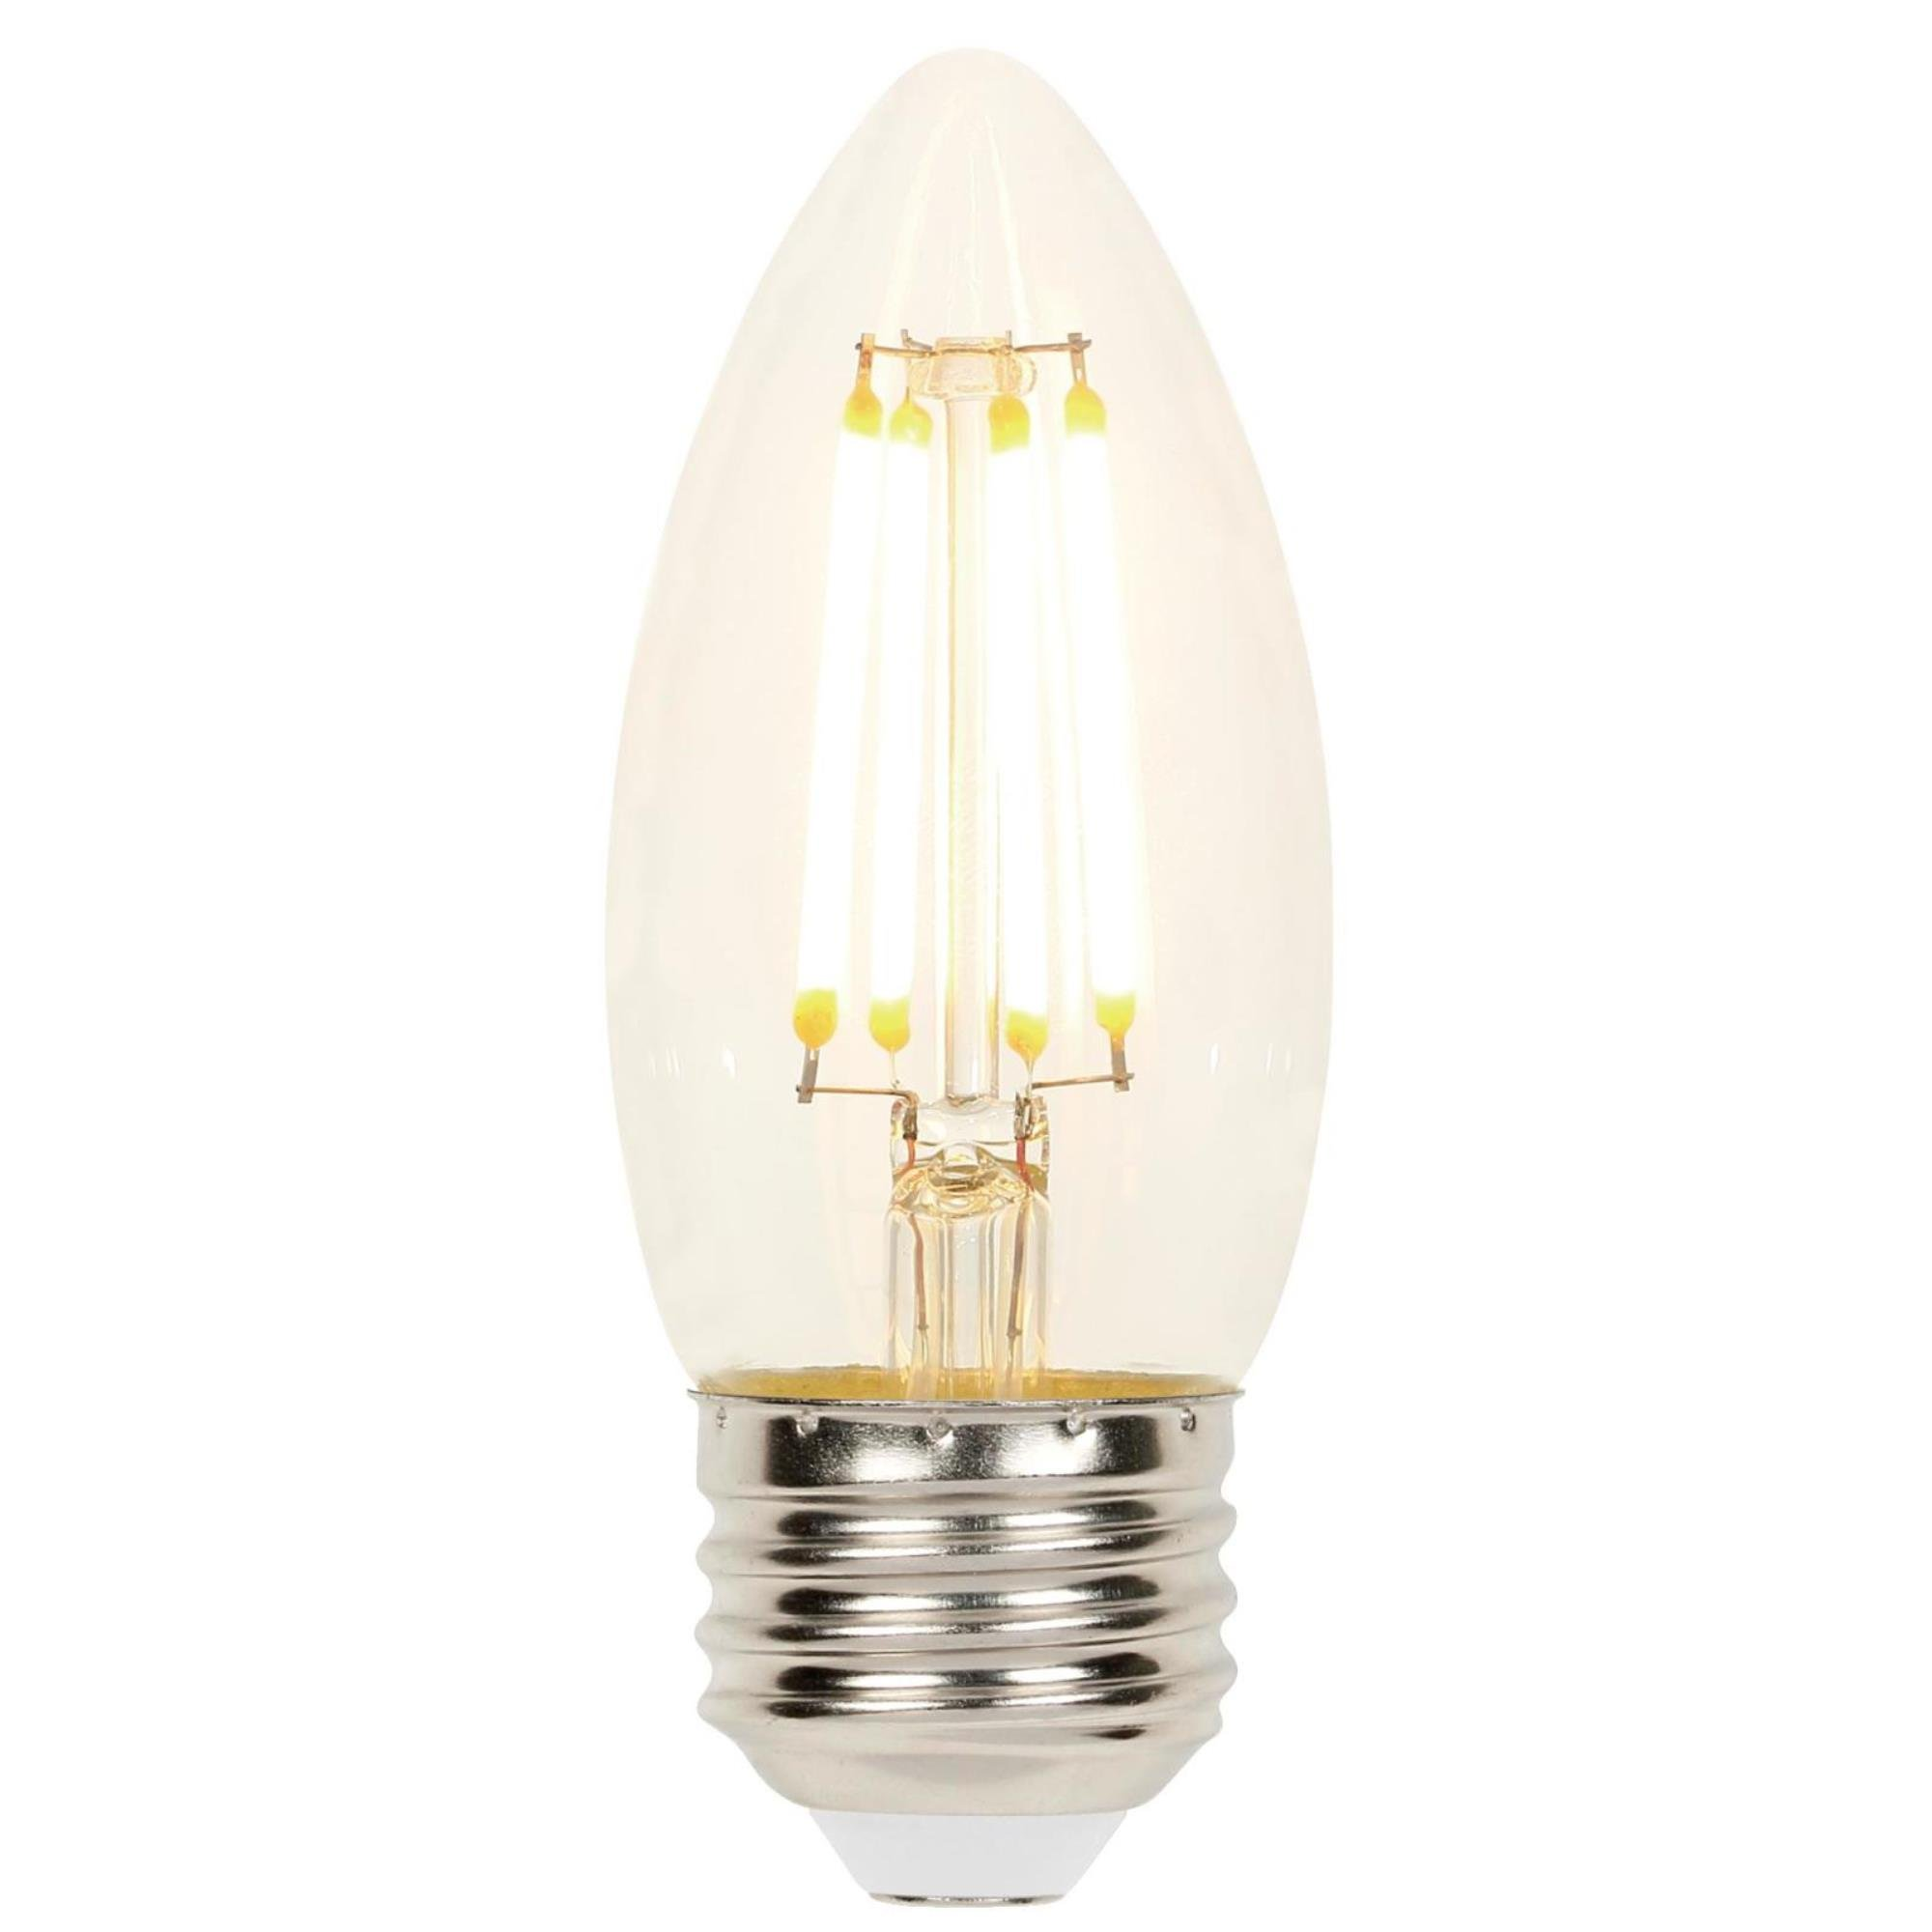 Westinghouse Lighting 4316900 60W Equivalent B11 Dimmable Clear Filament LED Light Bulb with Medium Base Single Pack,